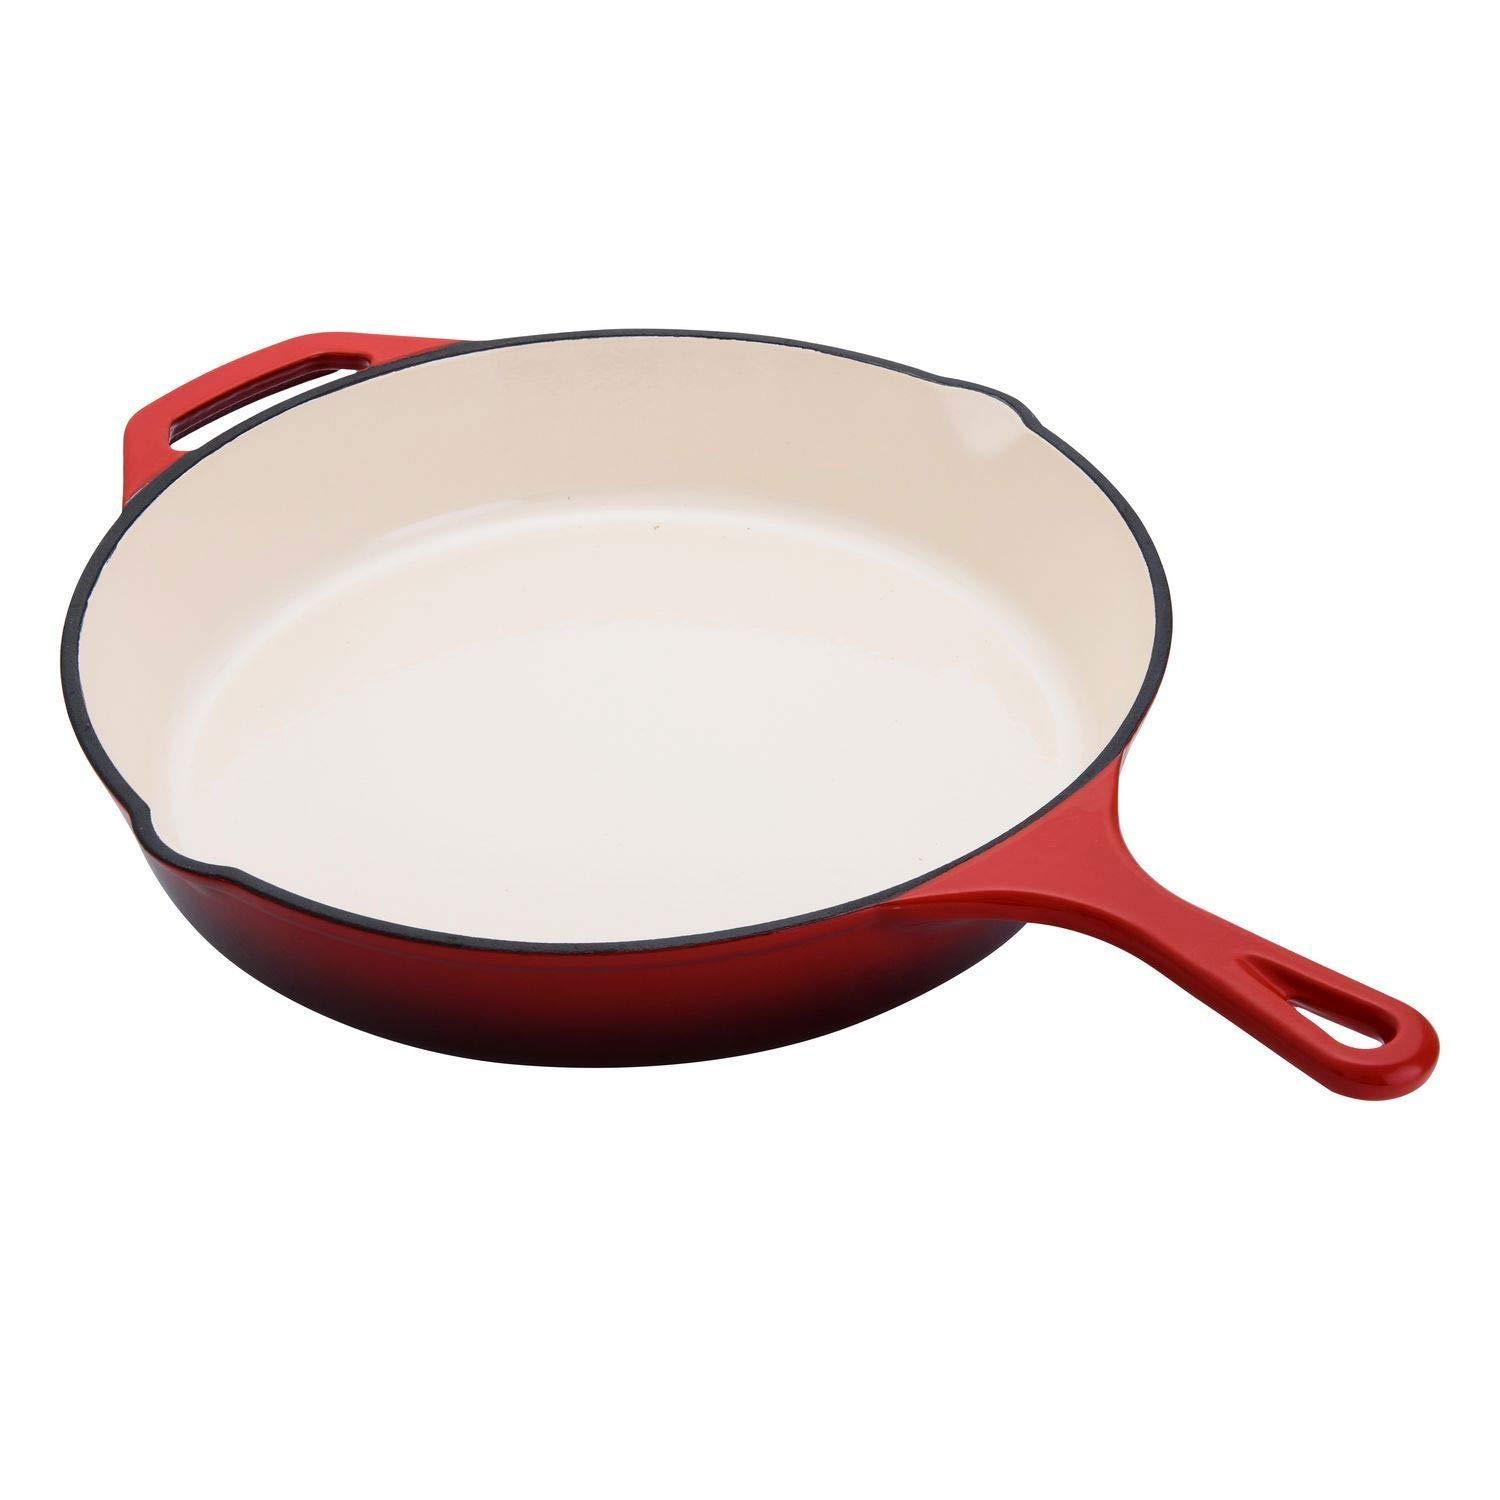 12 Inch Enameled Coated Solid Cast Iron Frying Pan Skillet, Red